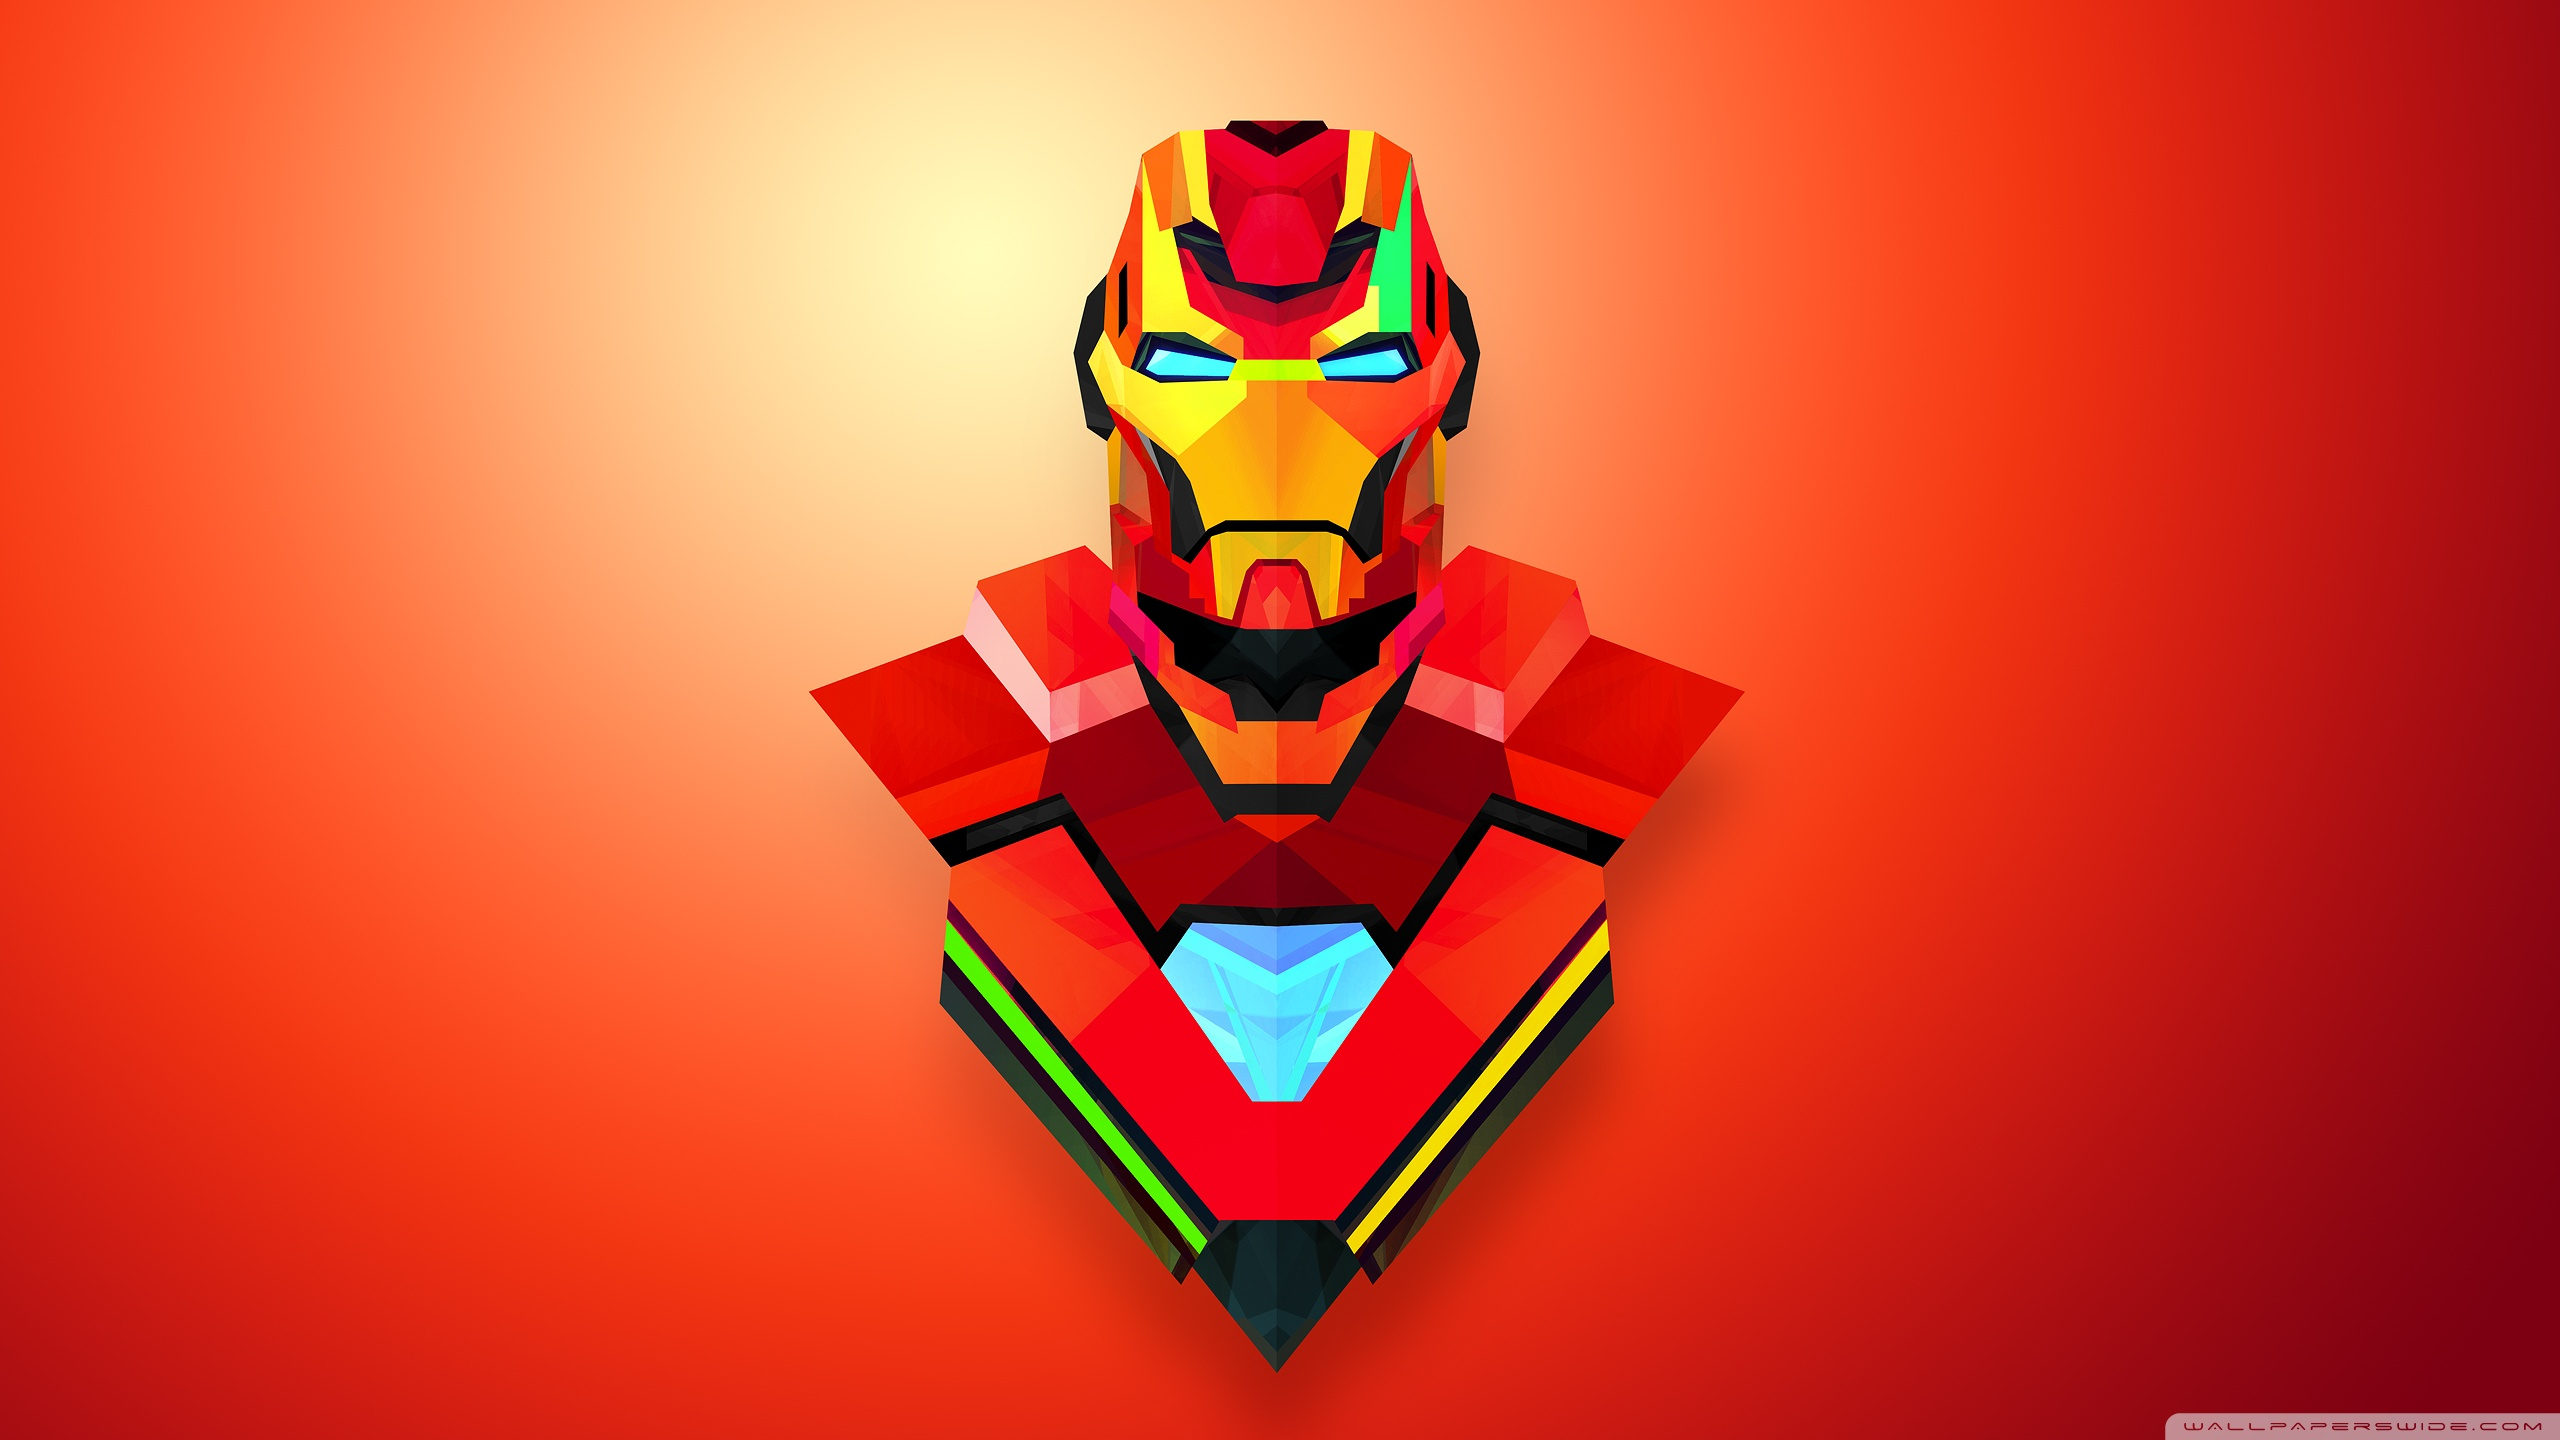 Wallpaper Ironman